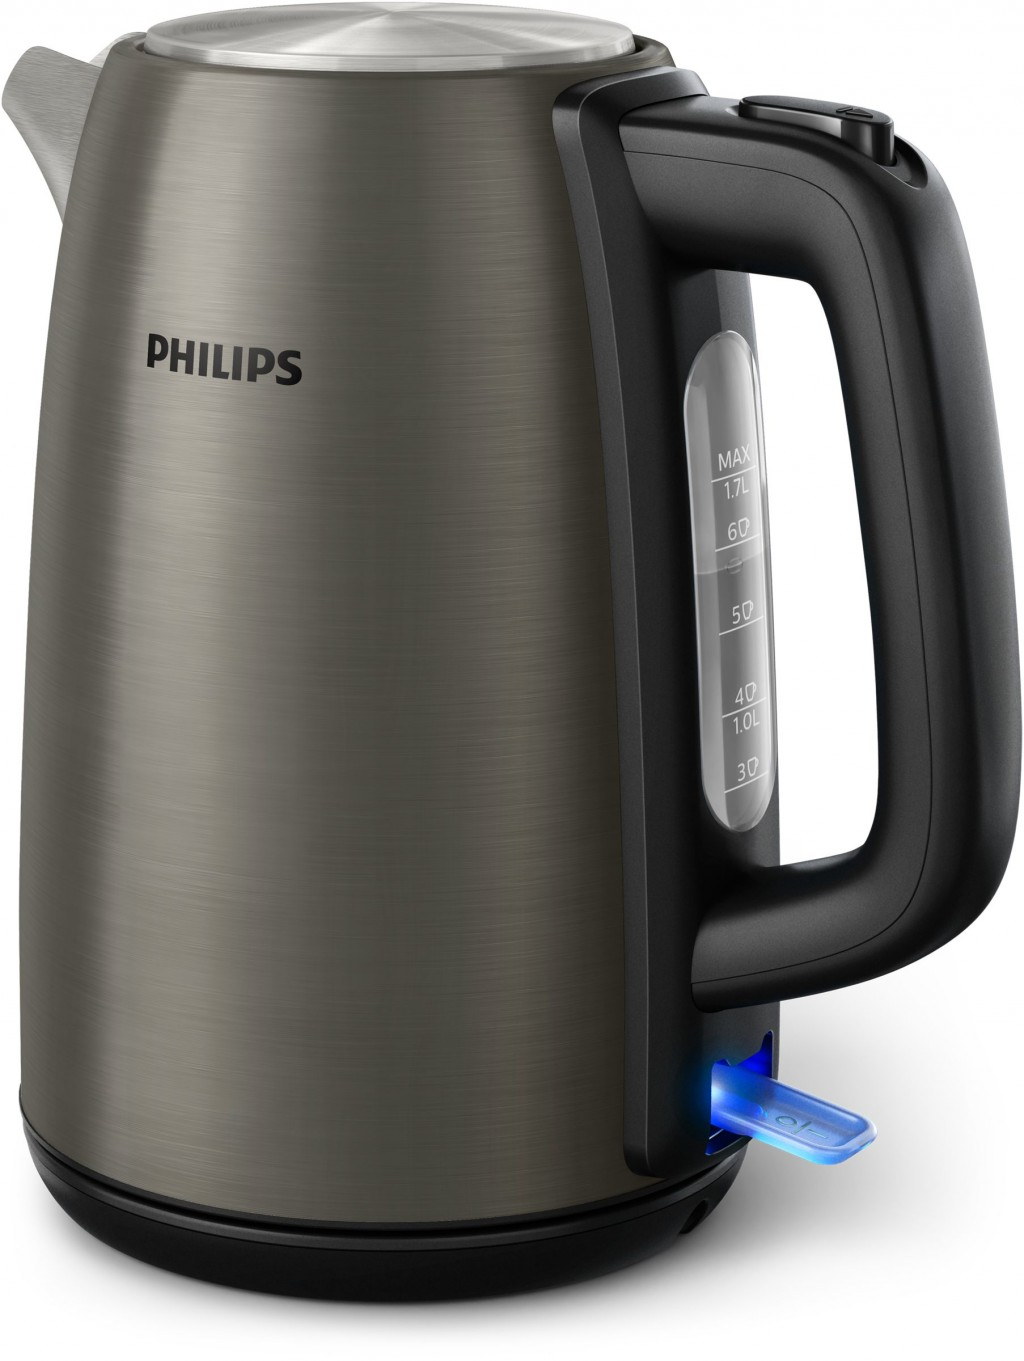 Philips Kettle HD9352/80 Standard, Stainless steel, Solar titanium colored metal, 2200 W, 360° rotational base, 1.7 L